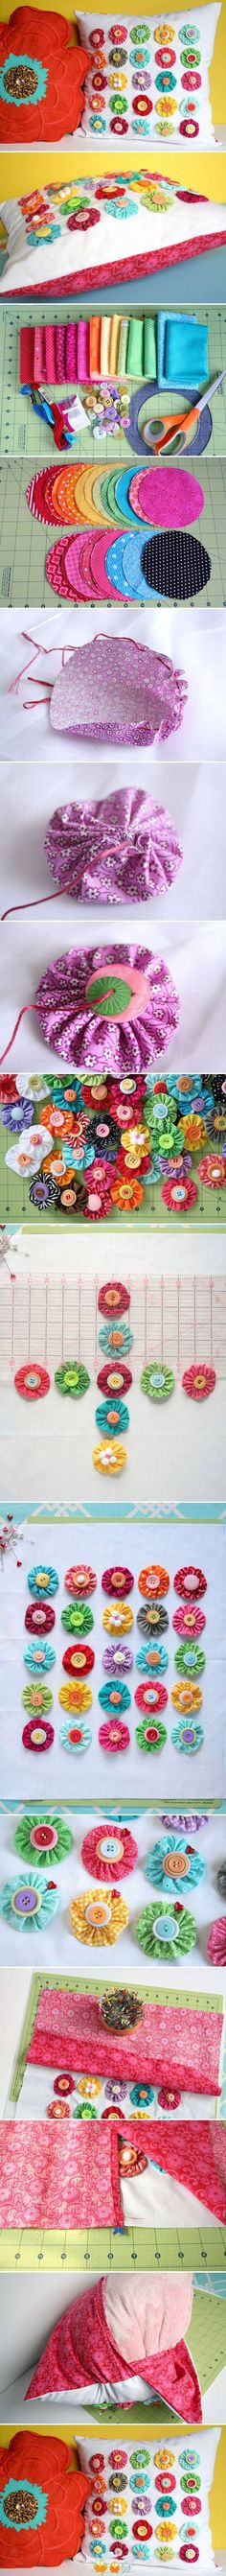 Kissen: DIY Button Pillow Decorations diy crafts craft ideas easy crafts diy ideas diy idea diy home diy pillows sewing easy diy for the home crafty decor home ideas diy decorations diy sewing sewing ideas easy sewing craft sewing Sewing Pillows, Diy Pillows, Cushions, Sewing Crafts, Sewing Projects, Diy Crafts, Sewing Ideas, Quilting, Diy Buttons